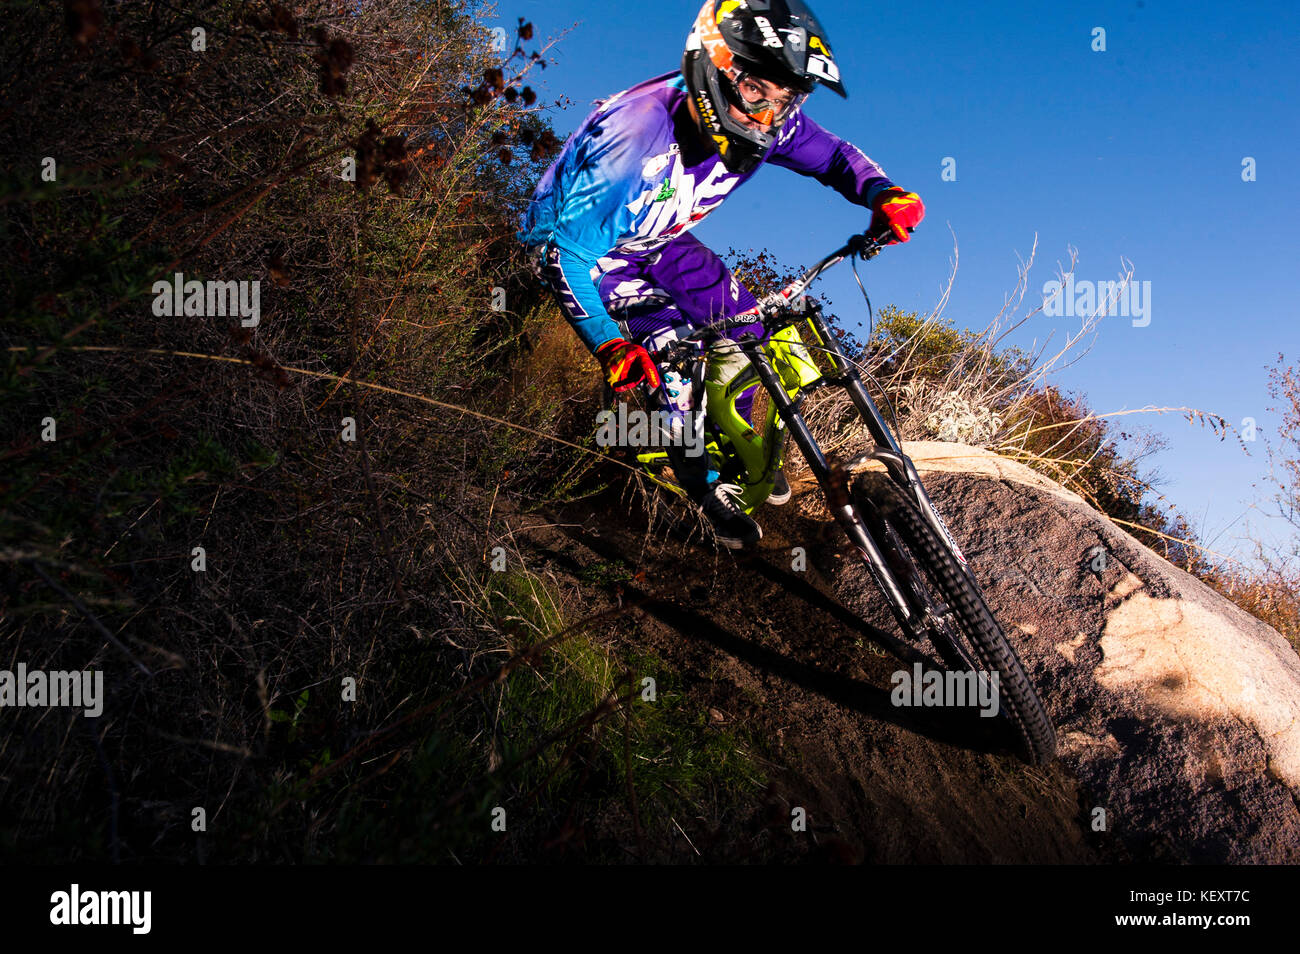 Cody Warren uses a rock to finds traction in a turn while riding his Downhill bike in Southern Califonia. December - Stock Image